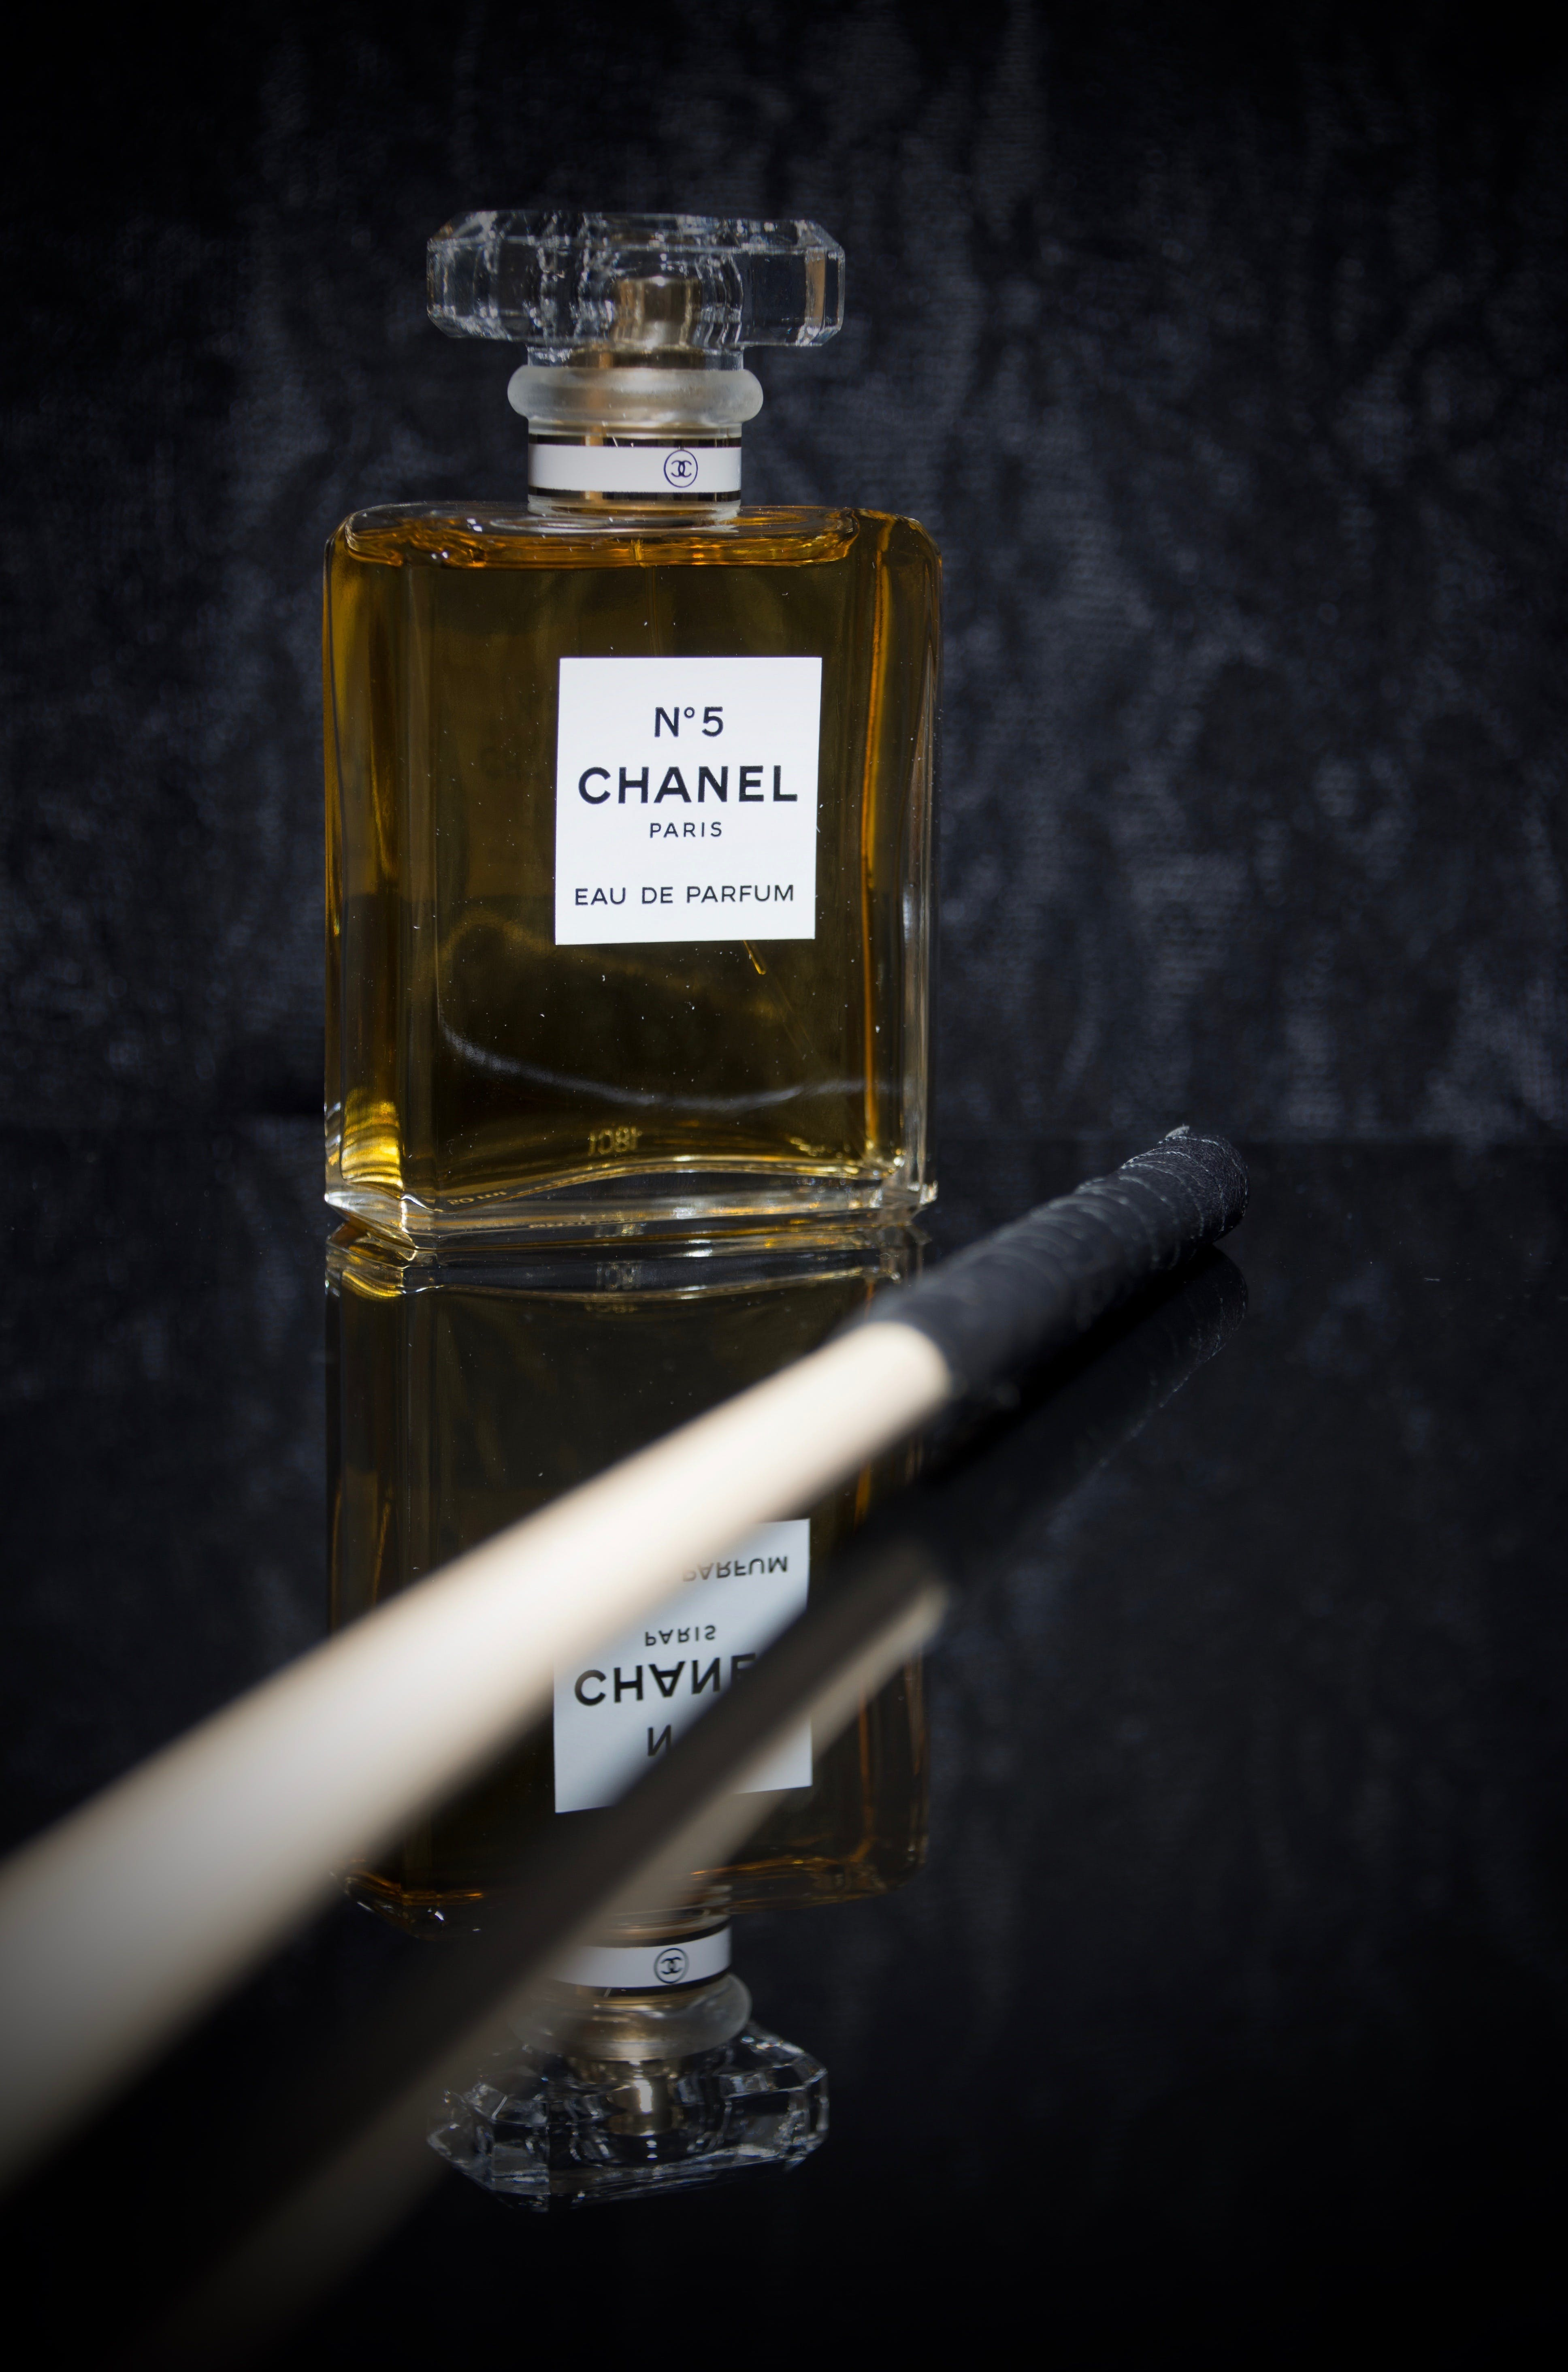 Free stock photo of black, cane, chanel no5, darkness